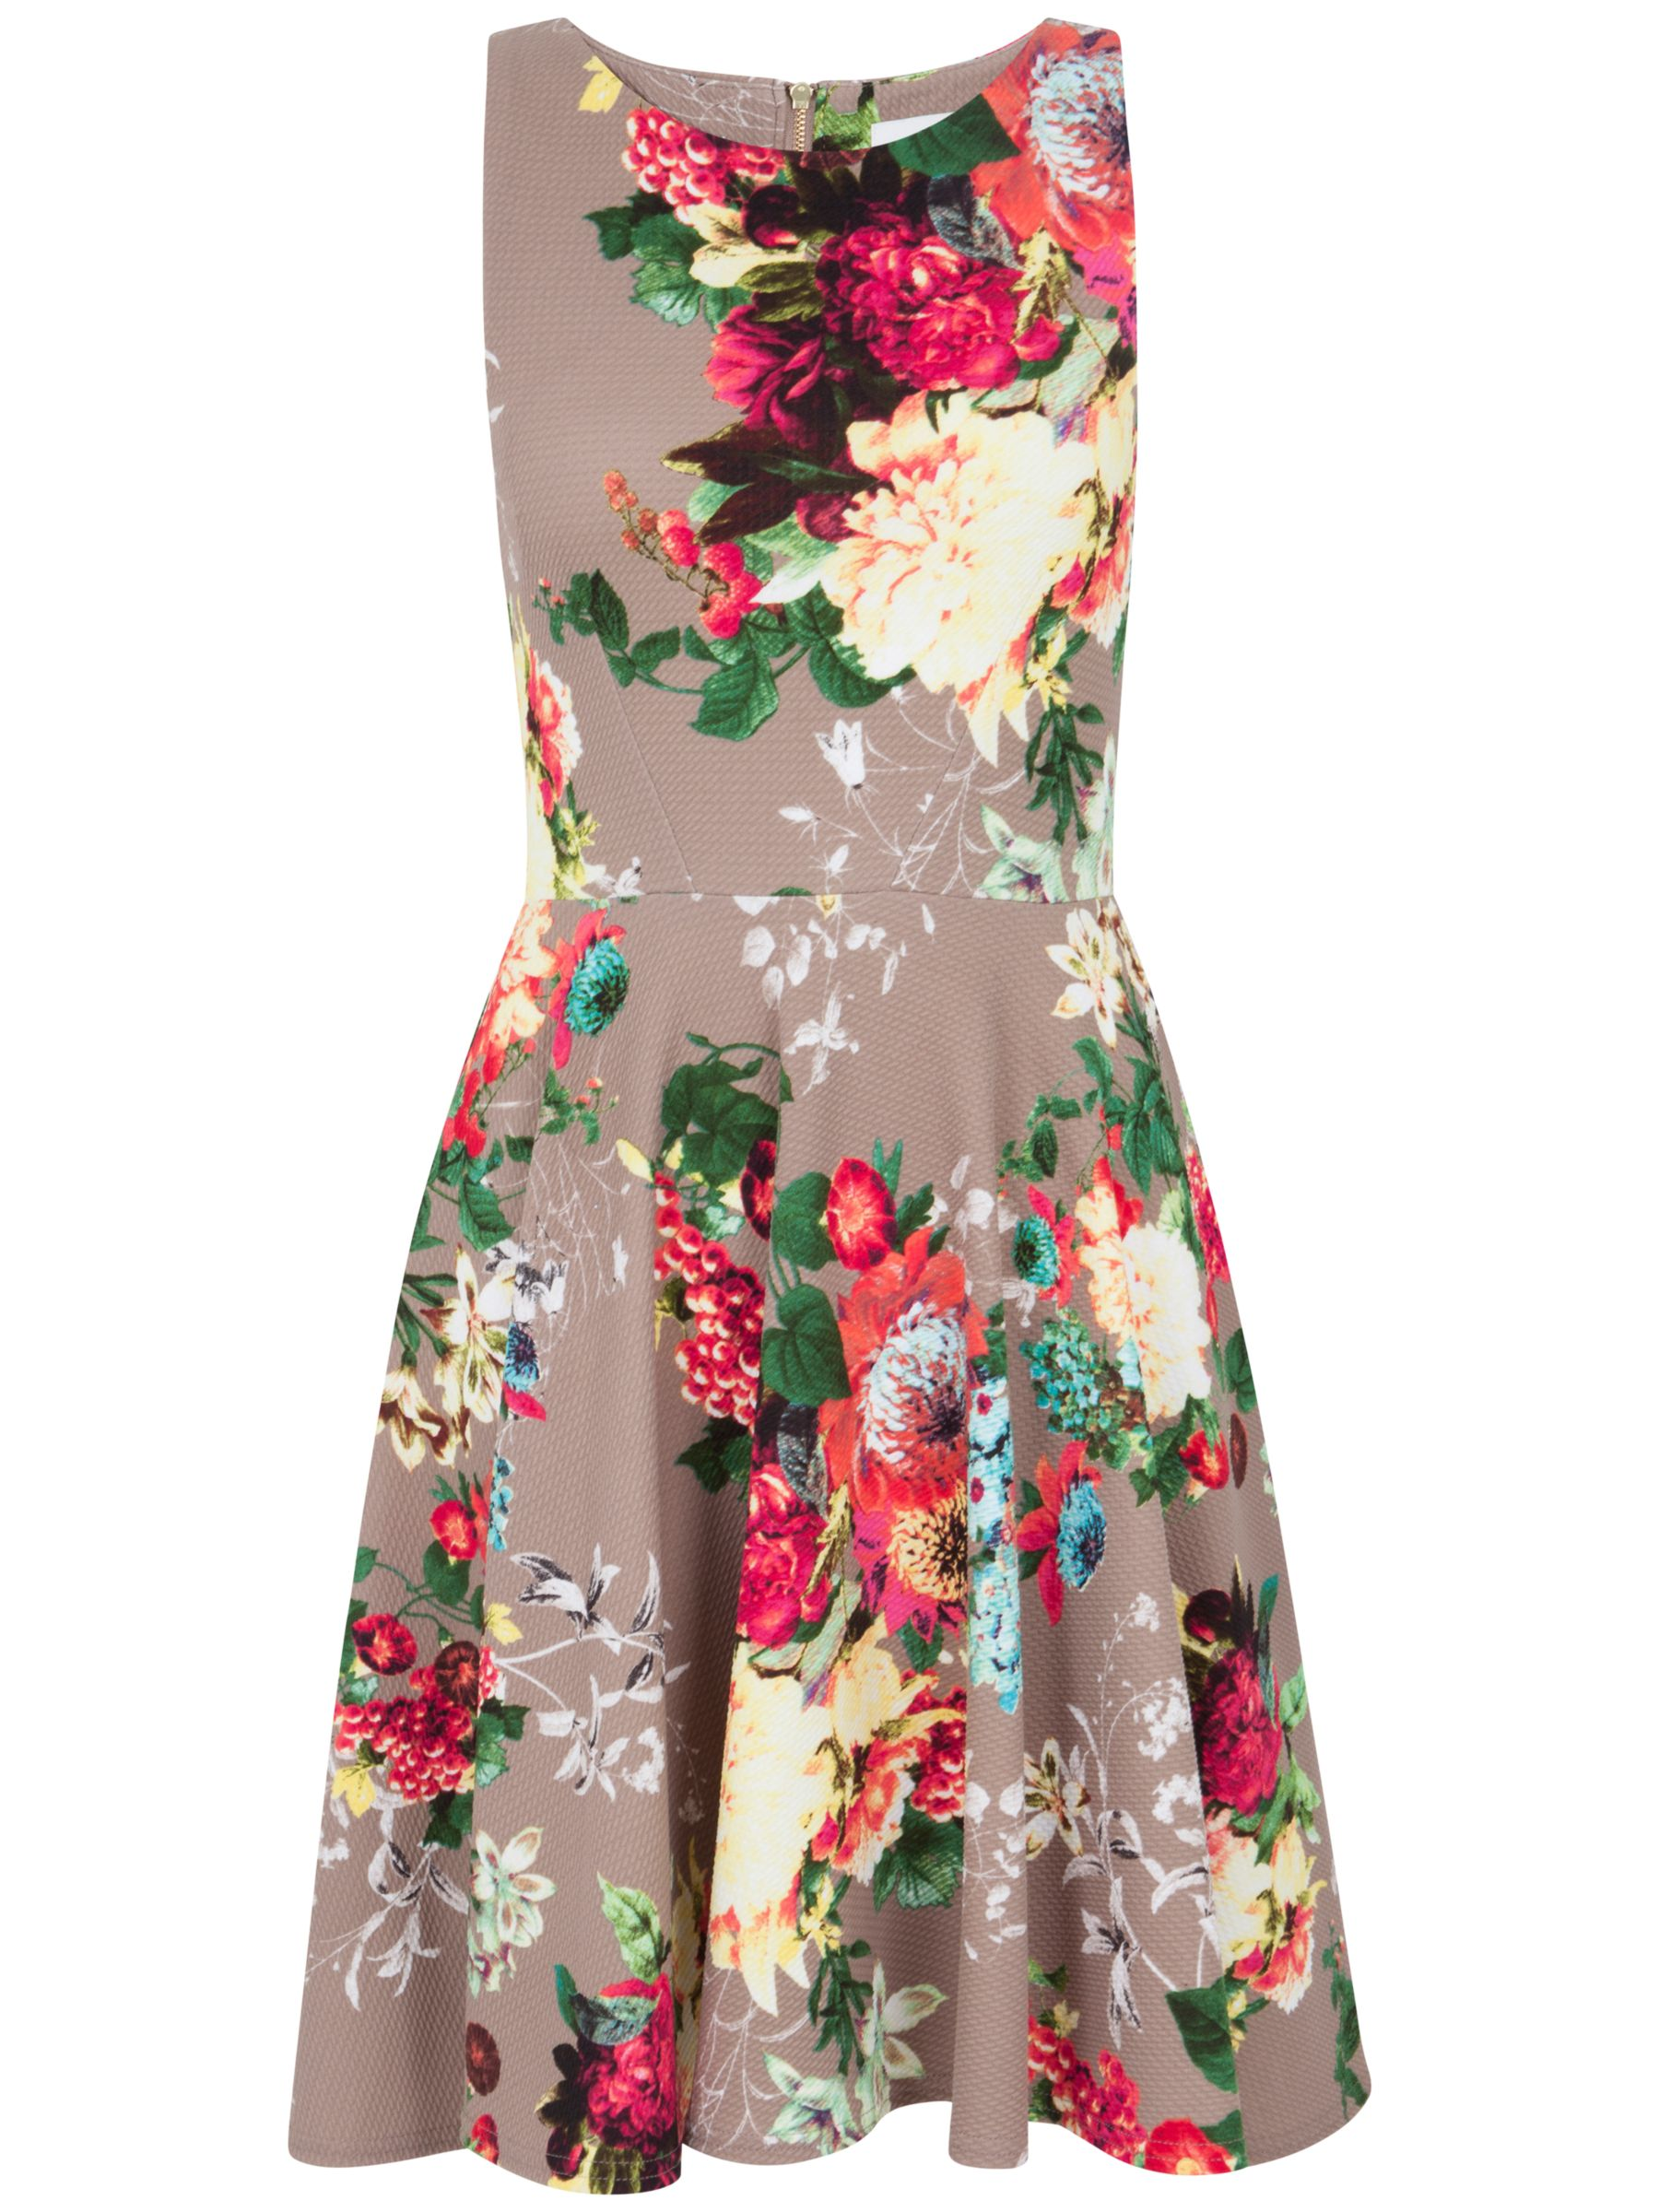 closet floral cut away dress multi, closet, floral, cut, away, dress, multi, 8|12|16|14|10, women, womens dresses, gifts, wedding, wedding clothing, female guests, 1679228